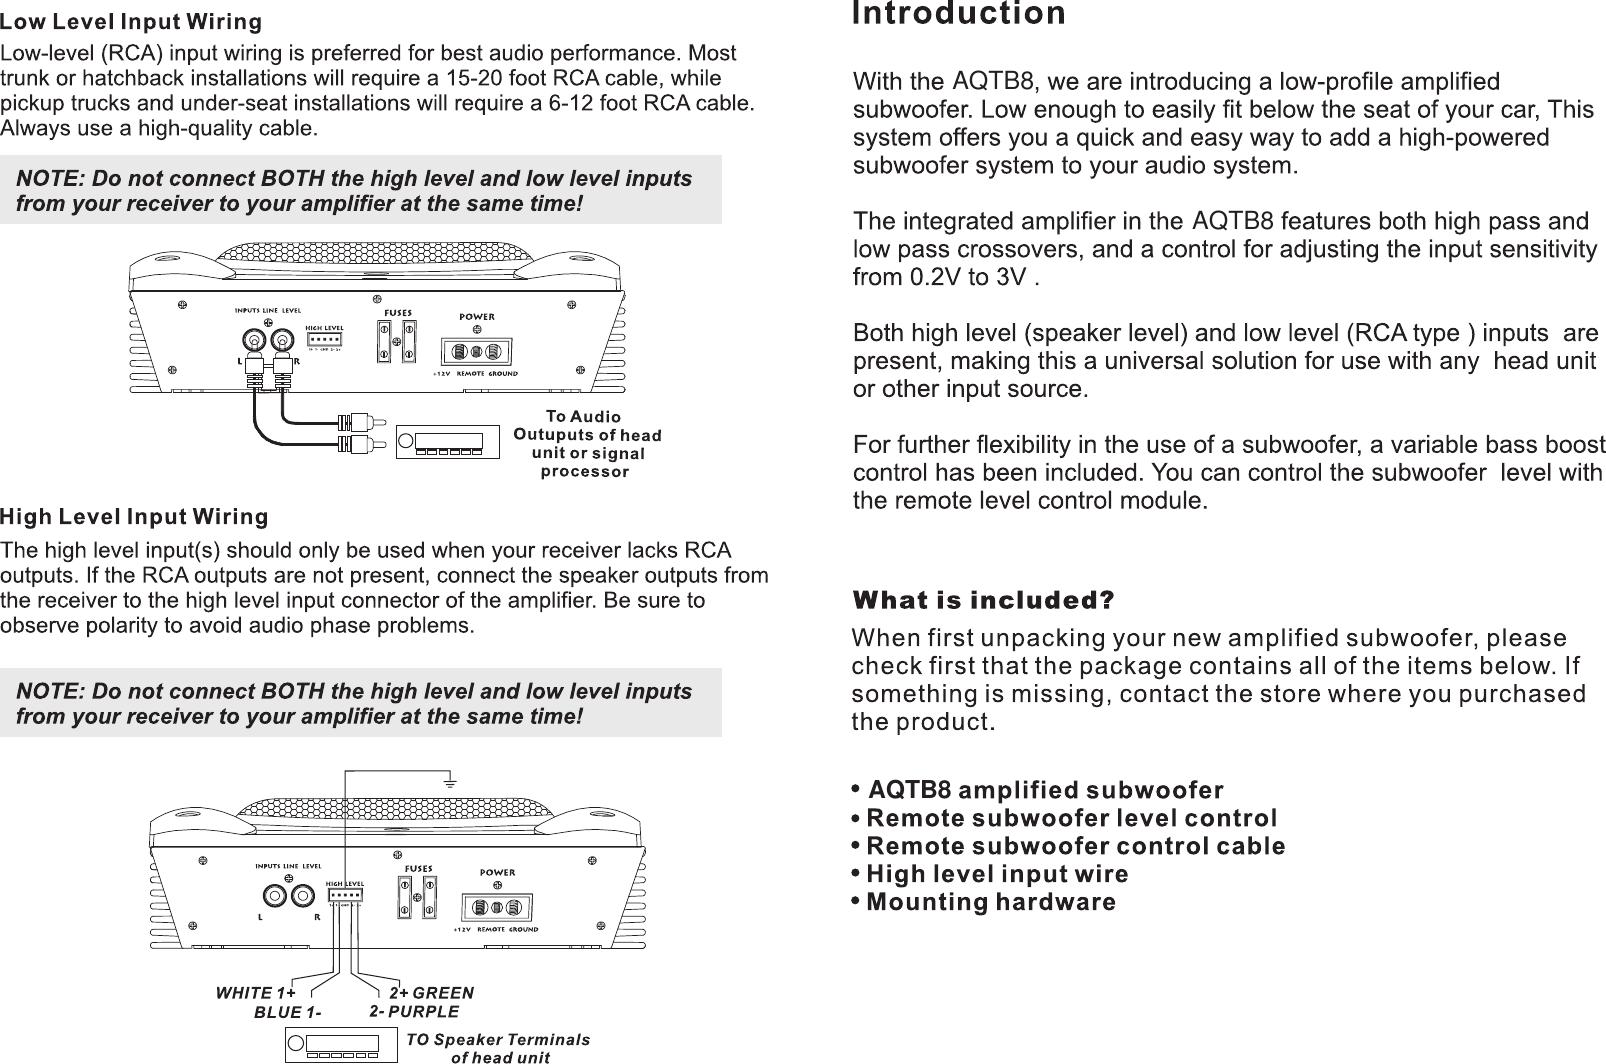 Lanzar Car Audio Aqtb8 Users Manual Speakers Installation Instructions Wiring Diagram Page 3 Of 4